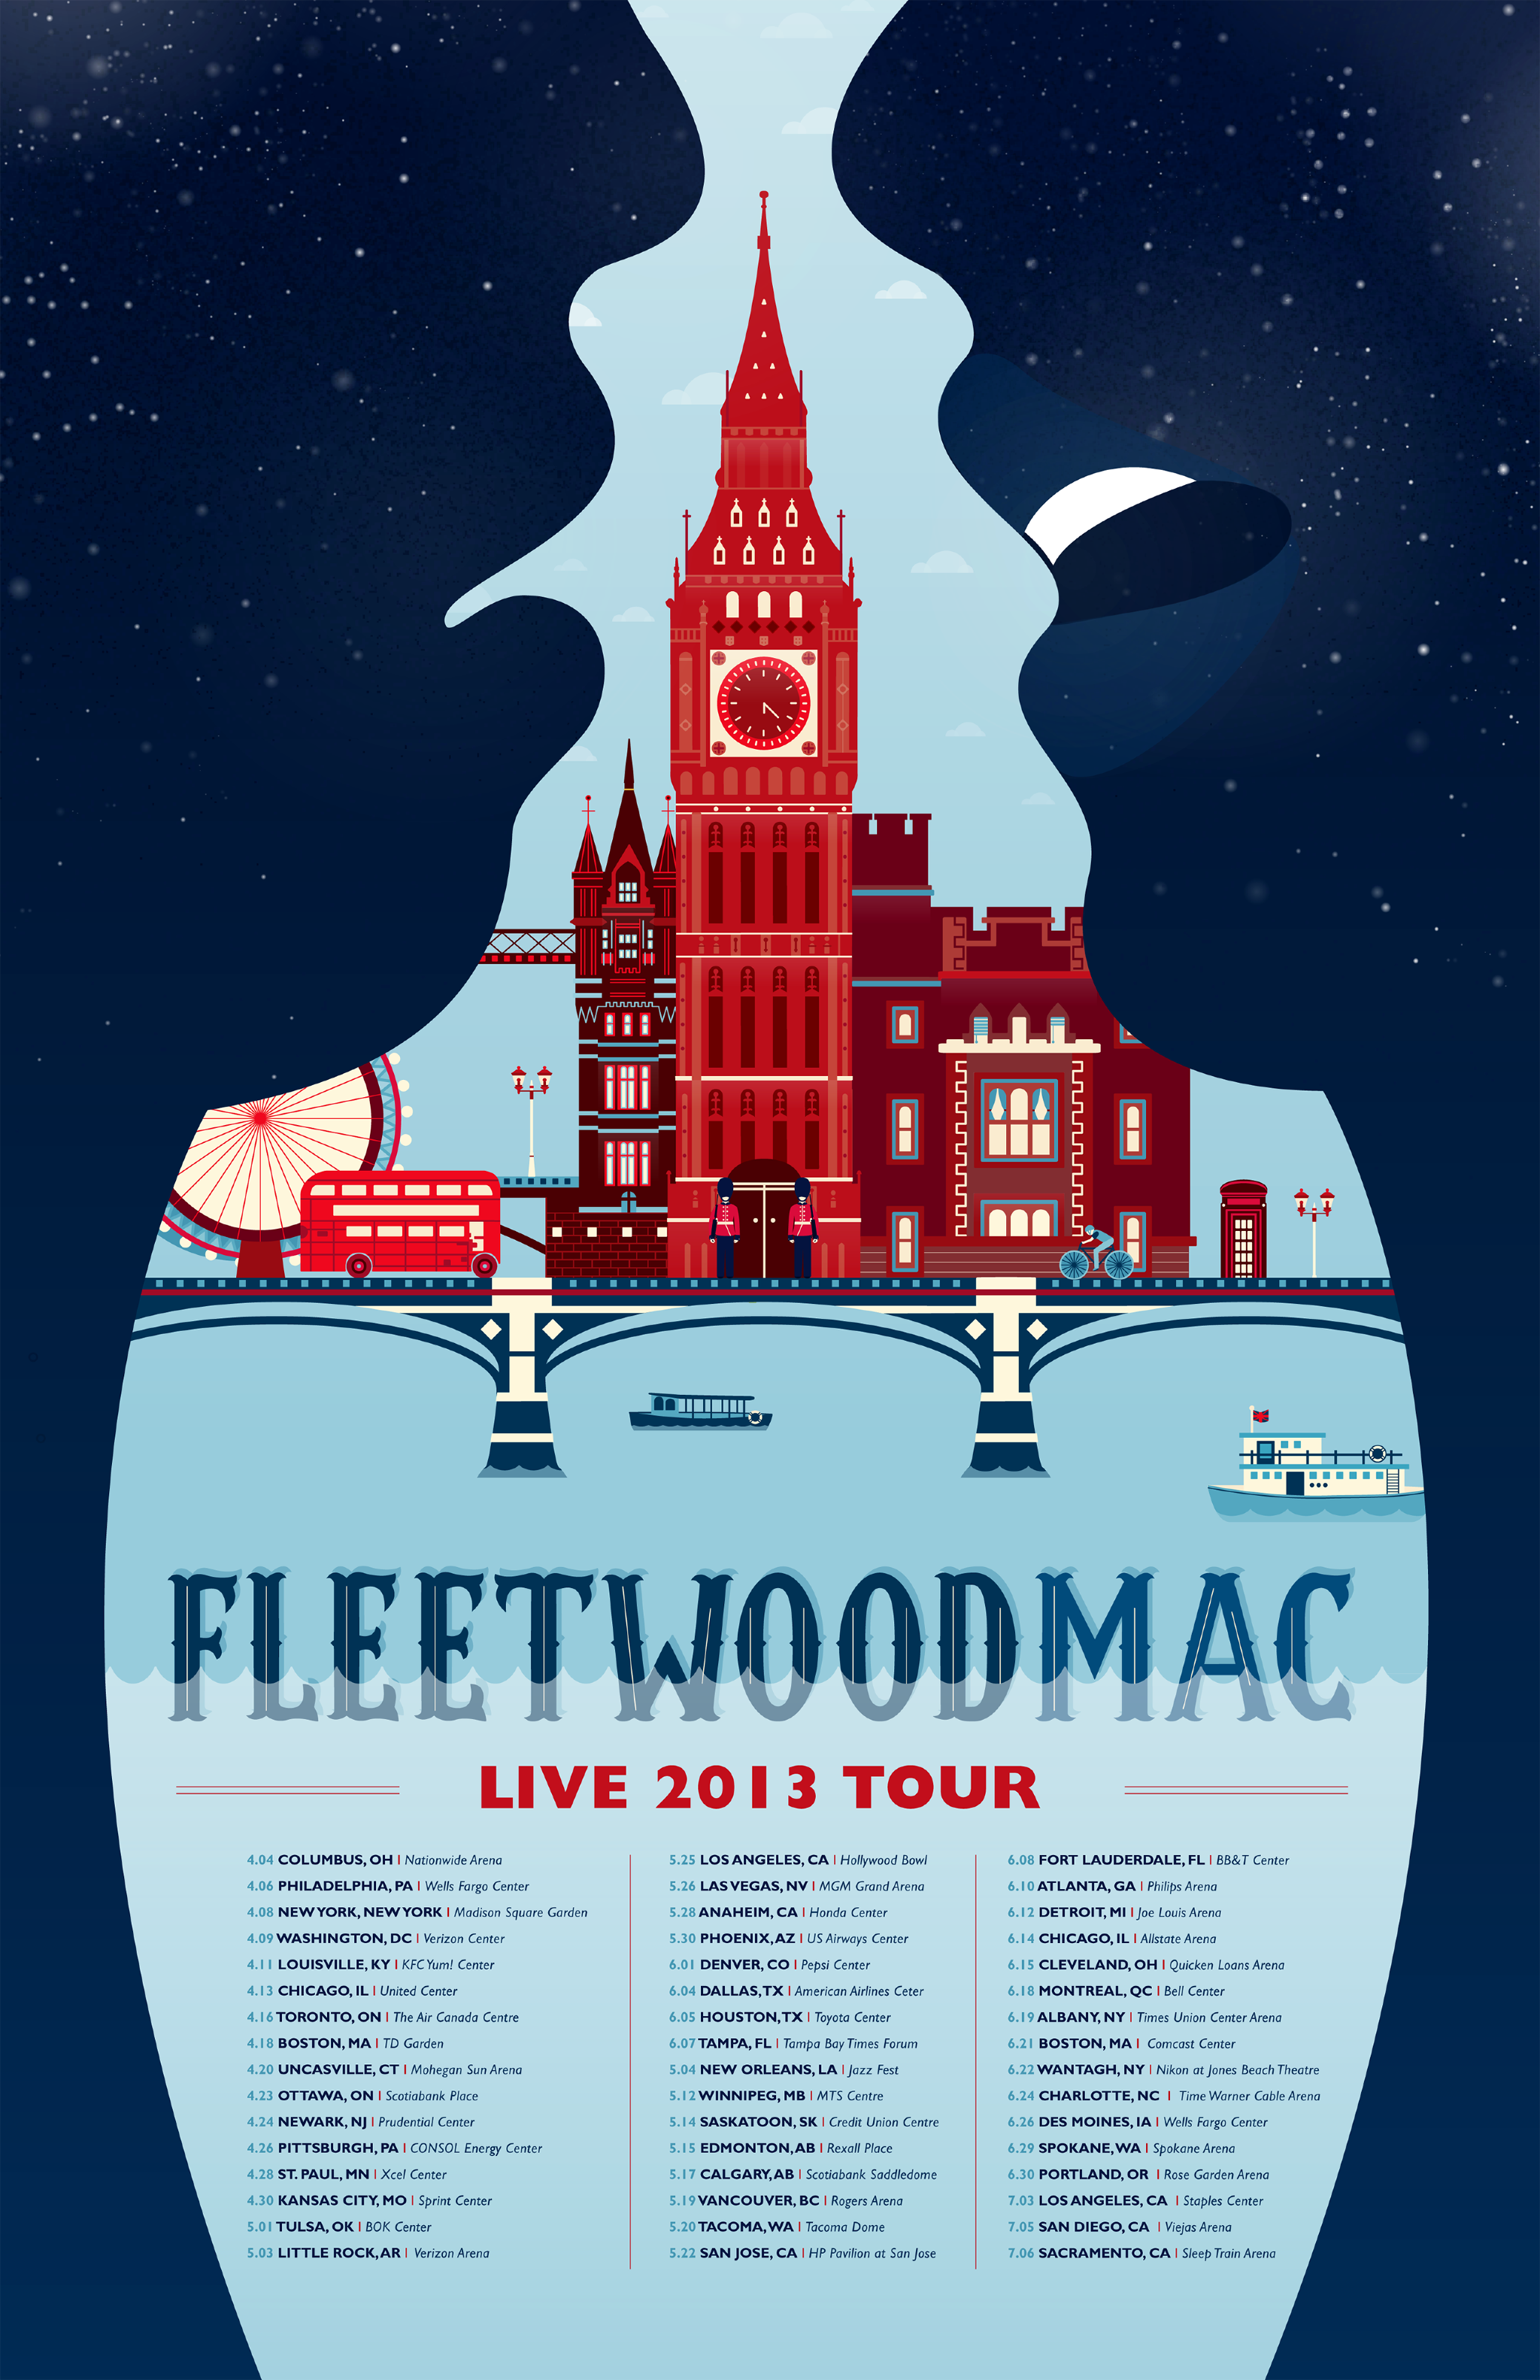 Concert Poster for FleetwoodMac, designed based on their